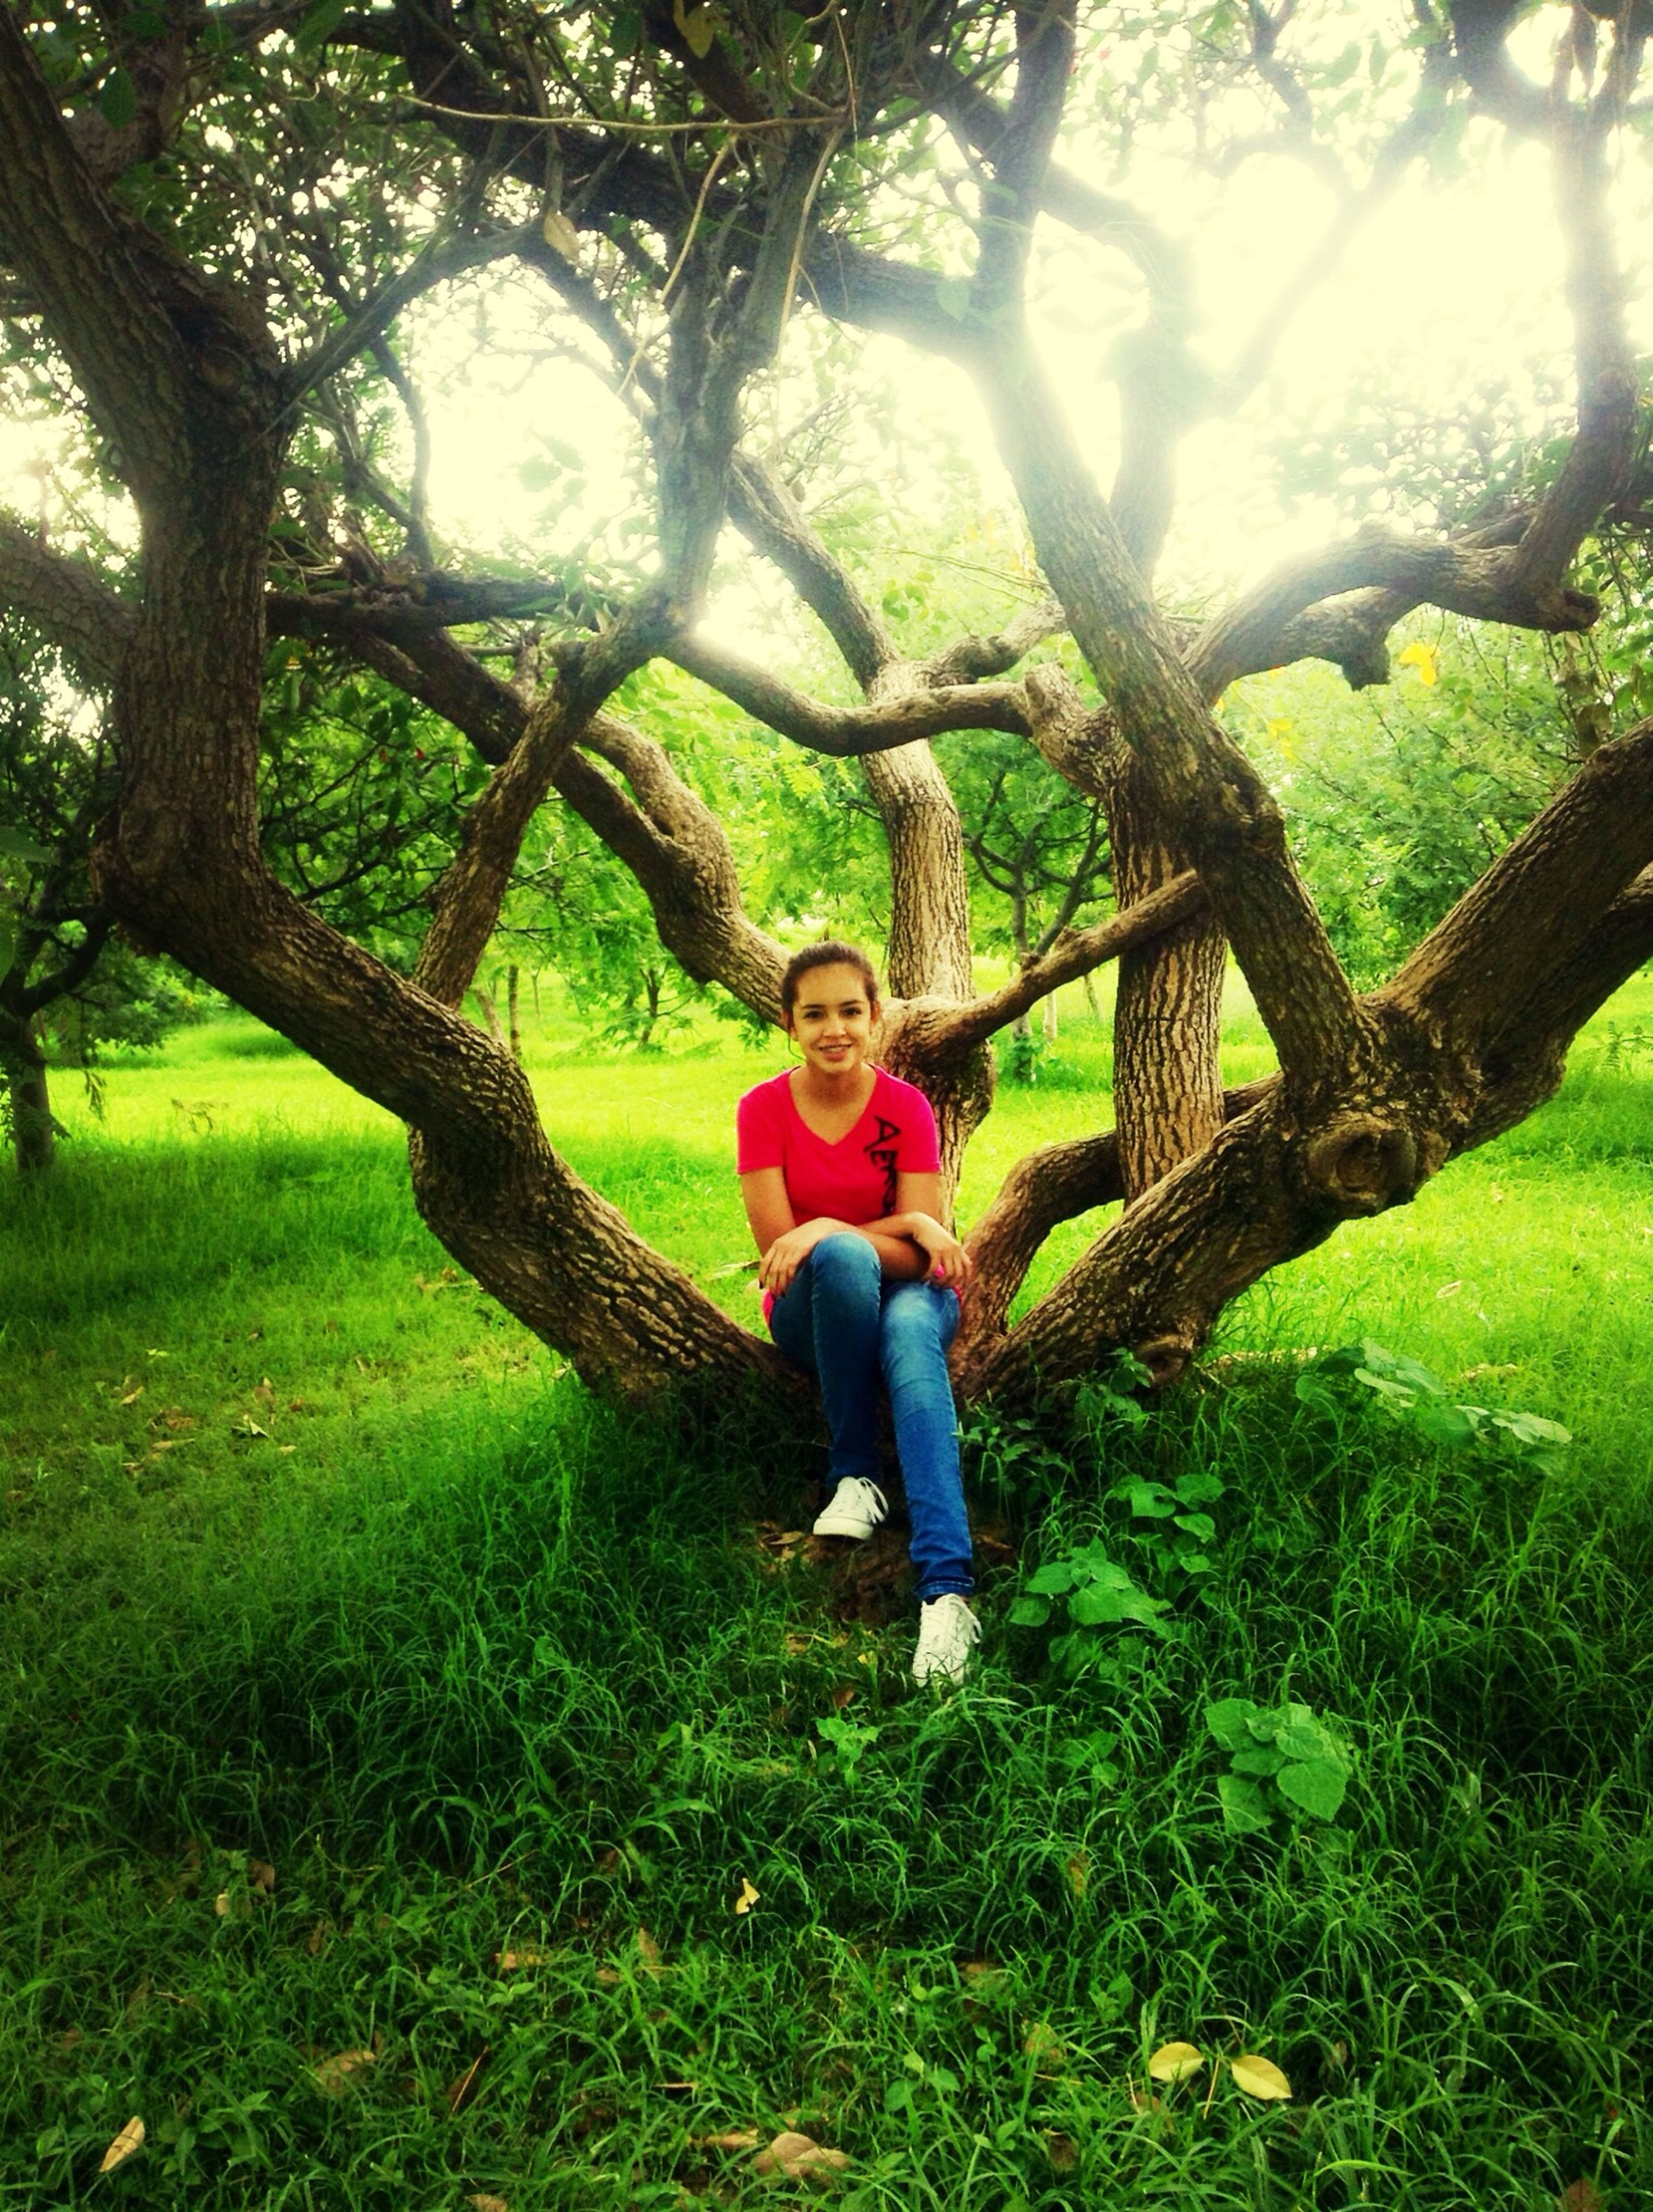 childhood, grass, lifestyles, leisure activity, full length, casual clothing, elementary age, person, boys, girls, green color, tree, park - man made space, innocence, field, standing, grassy, playful